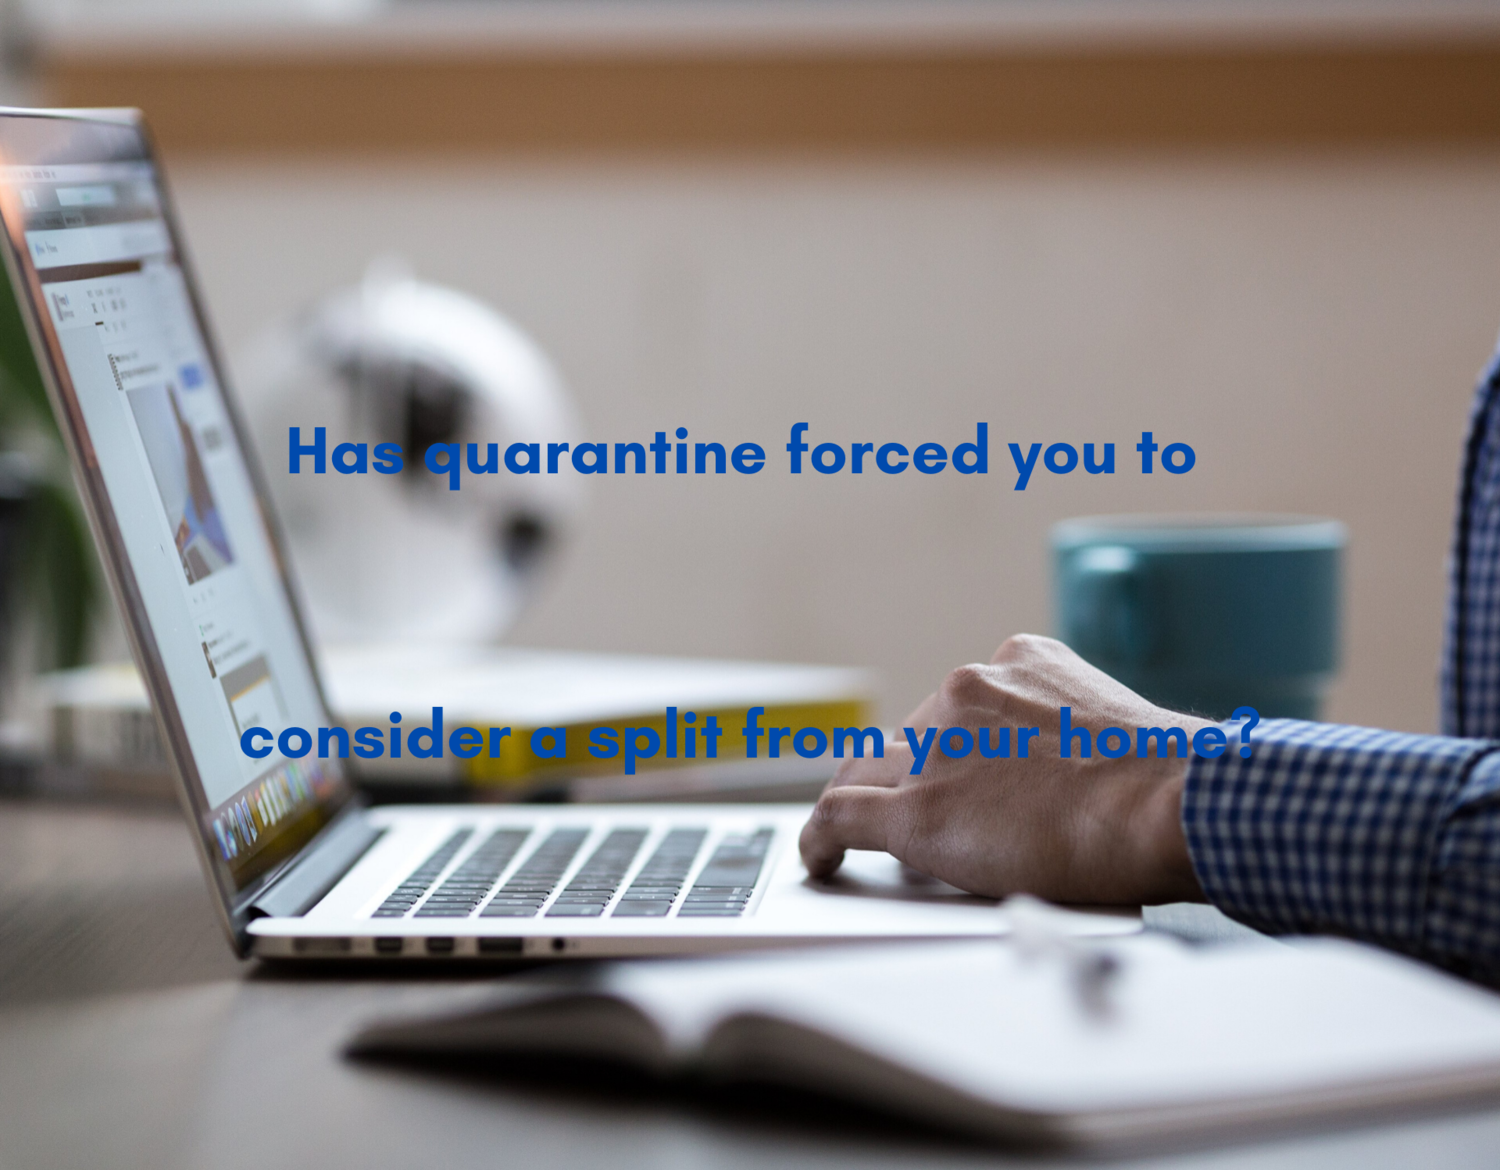 Has quarantine forced you to consider a split from your home?